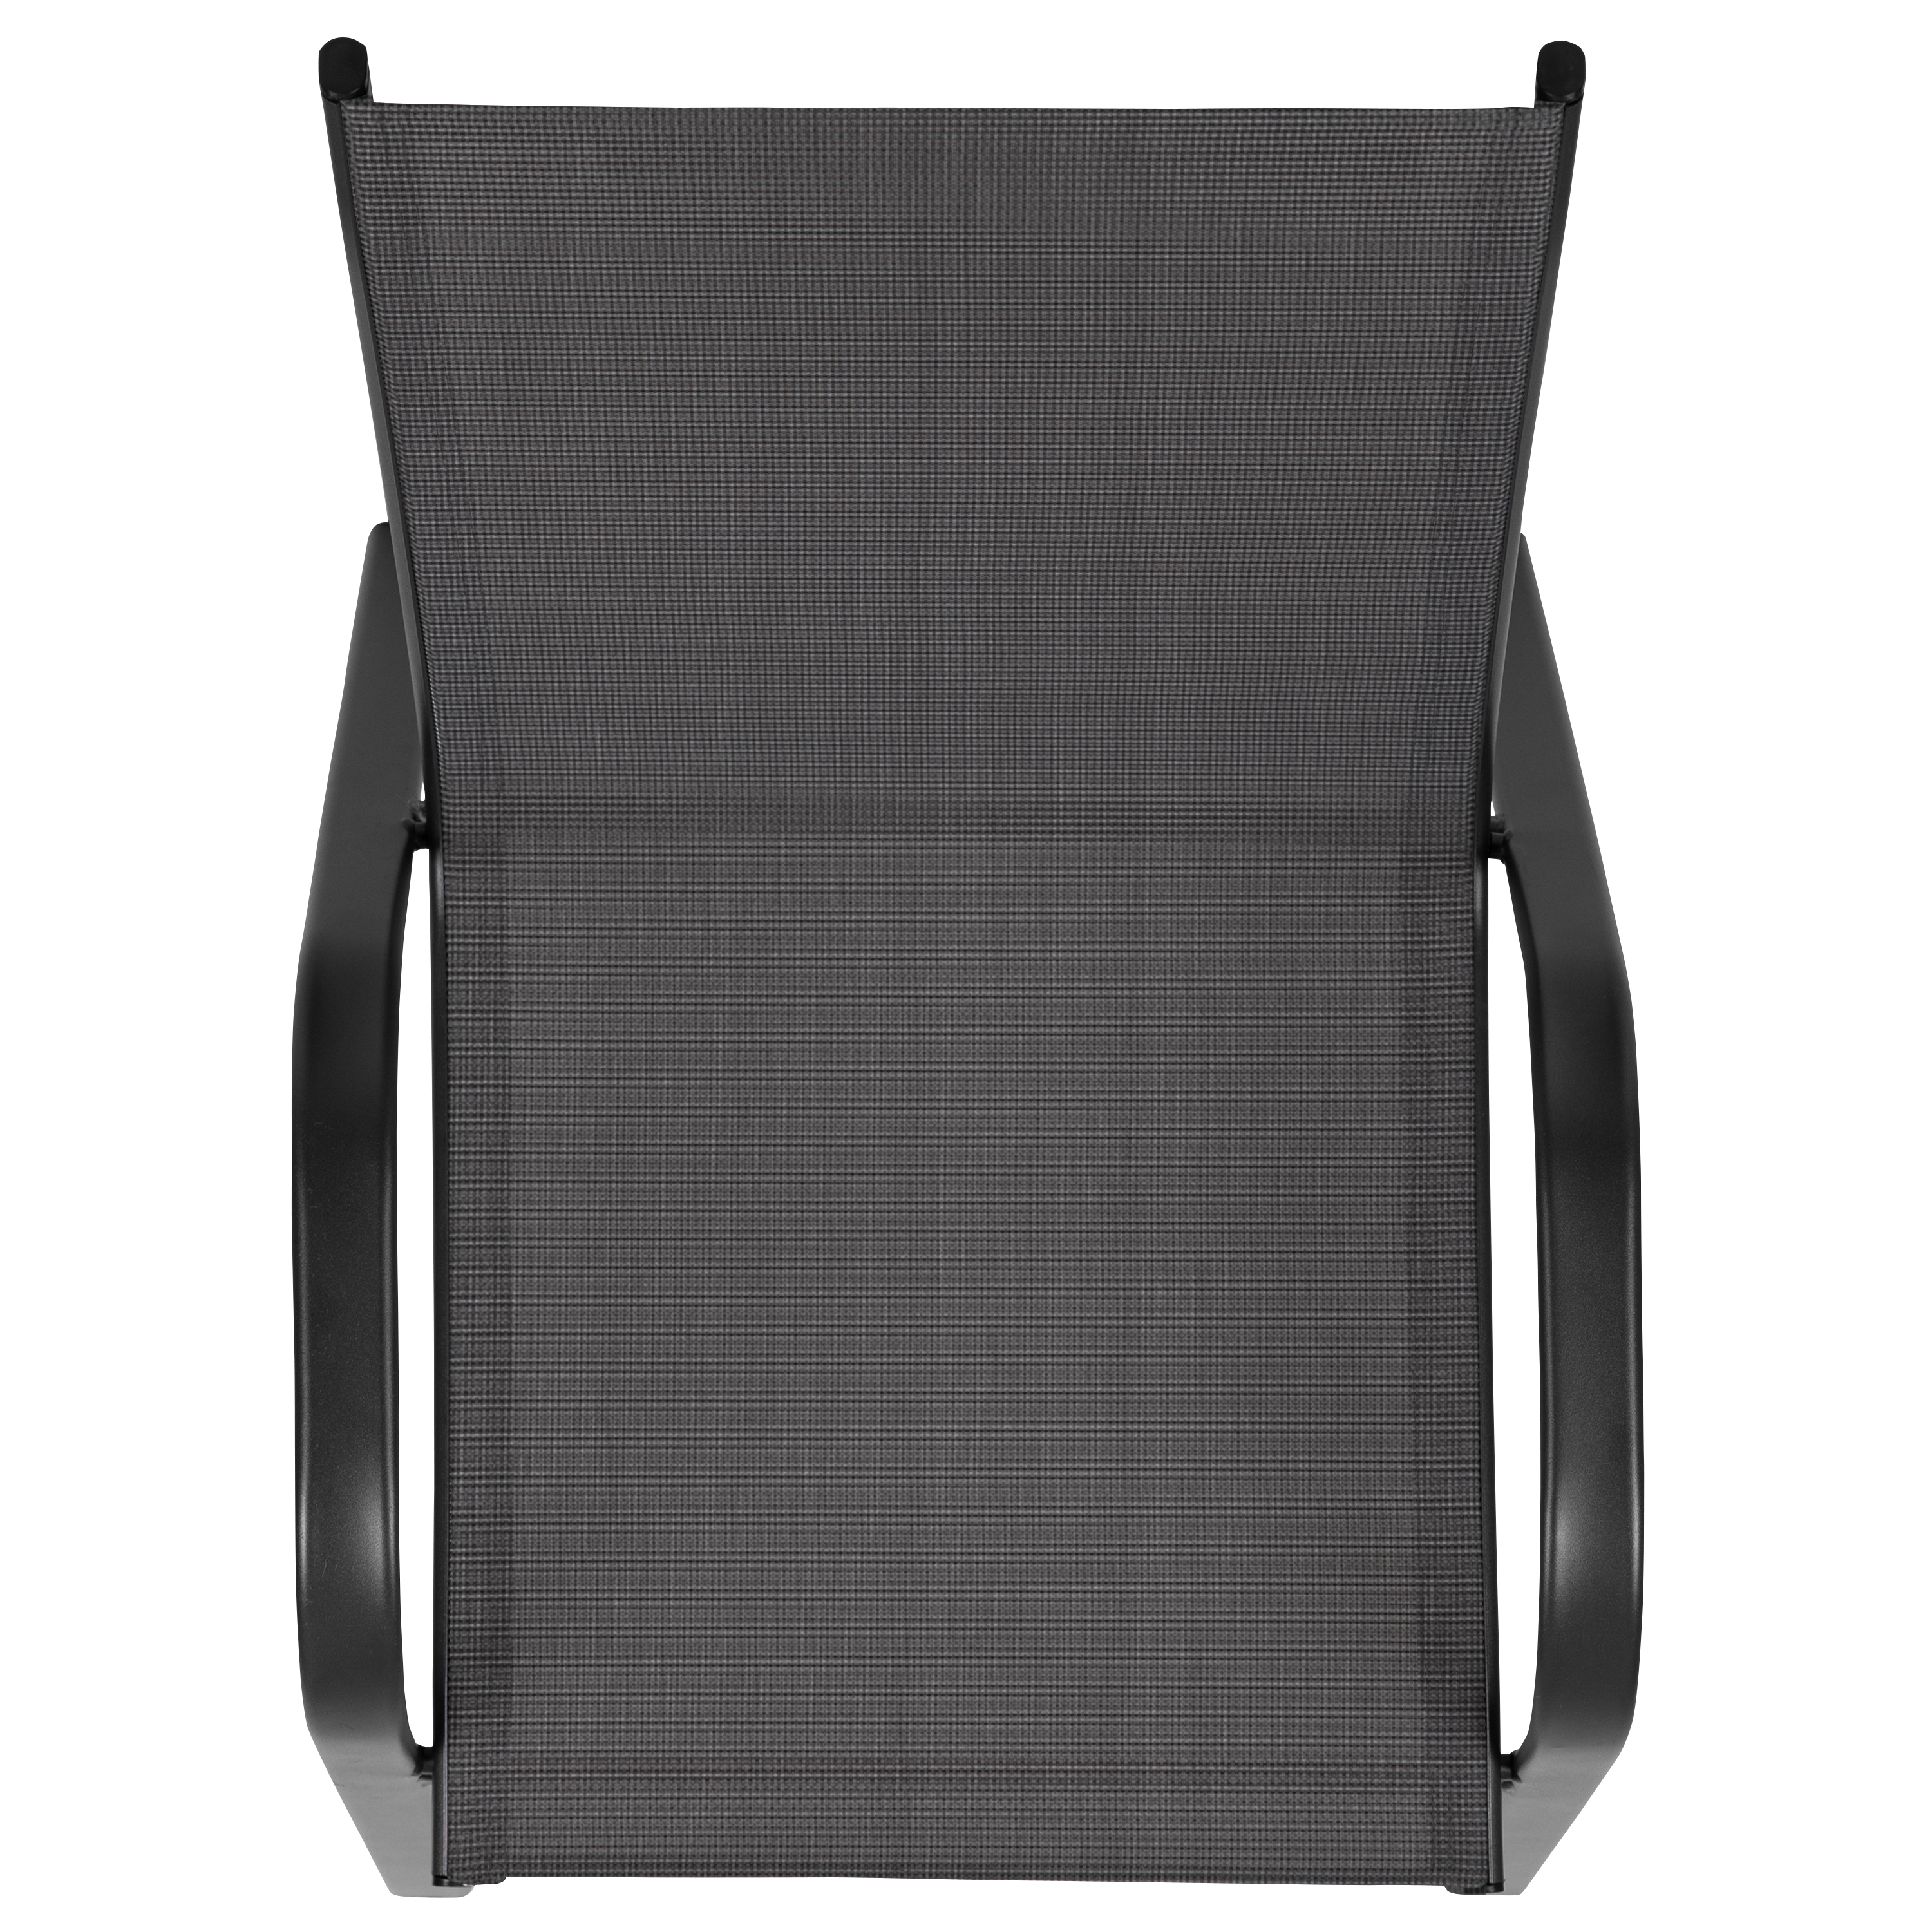 Details about  /4 Pack Outdoor Stack Chair with Flex Comfort Material Patio Stack Chair